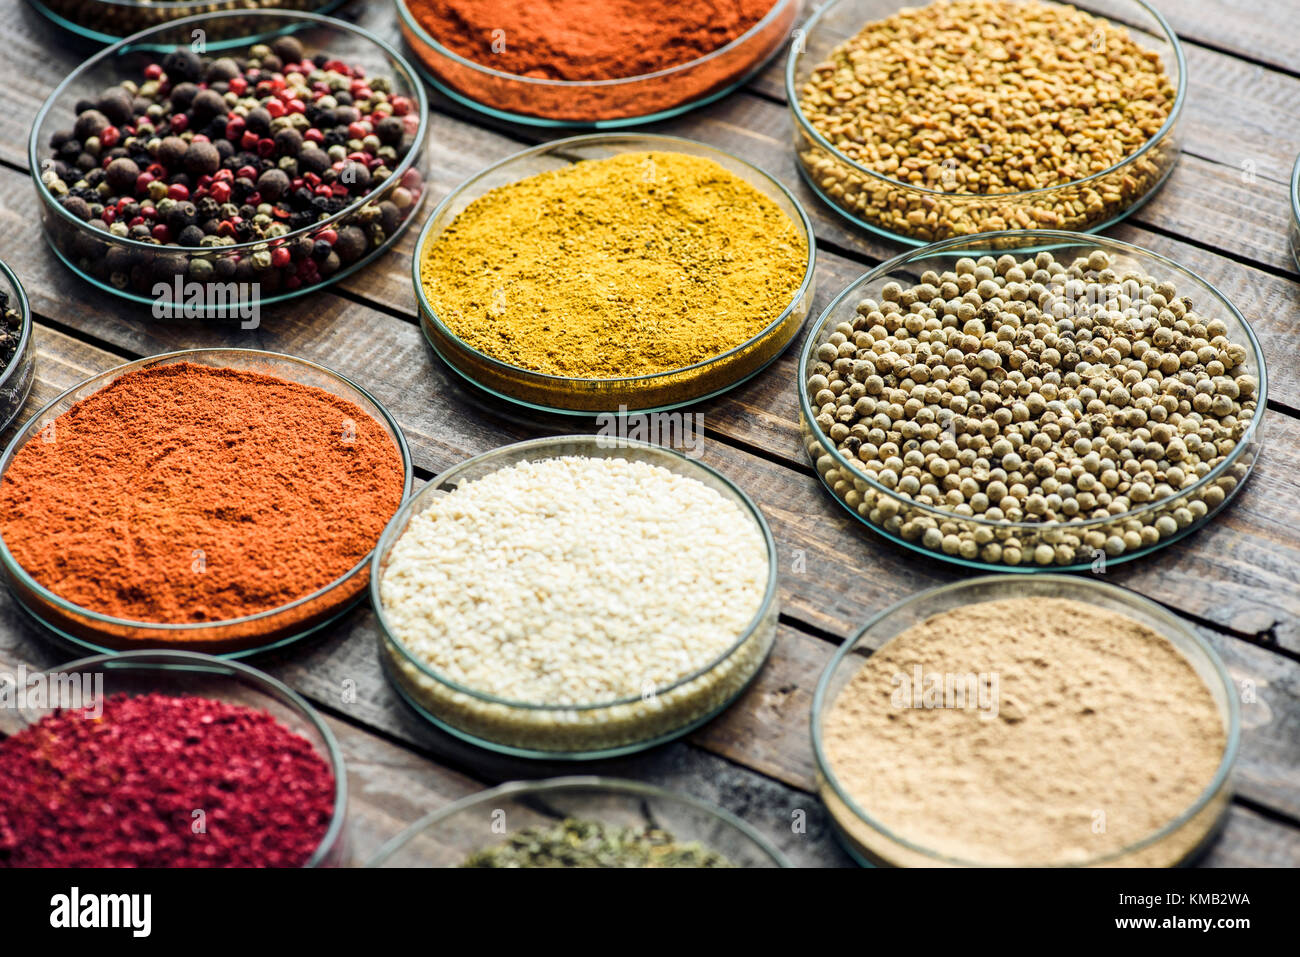 glass bowls with different colorful spices  - Stock Image